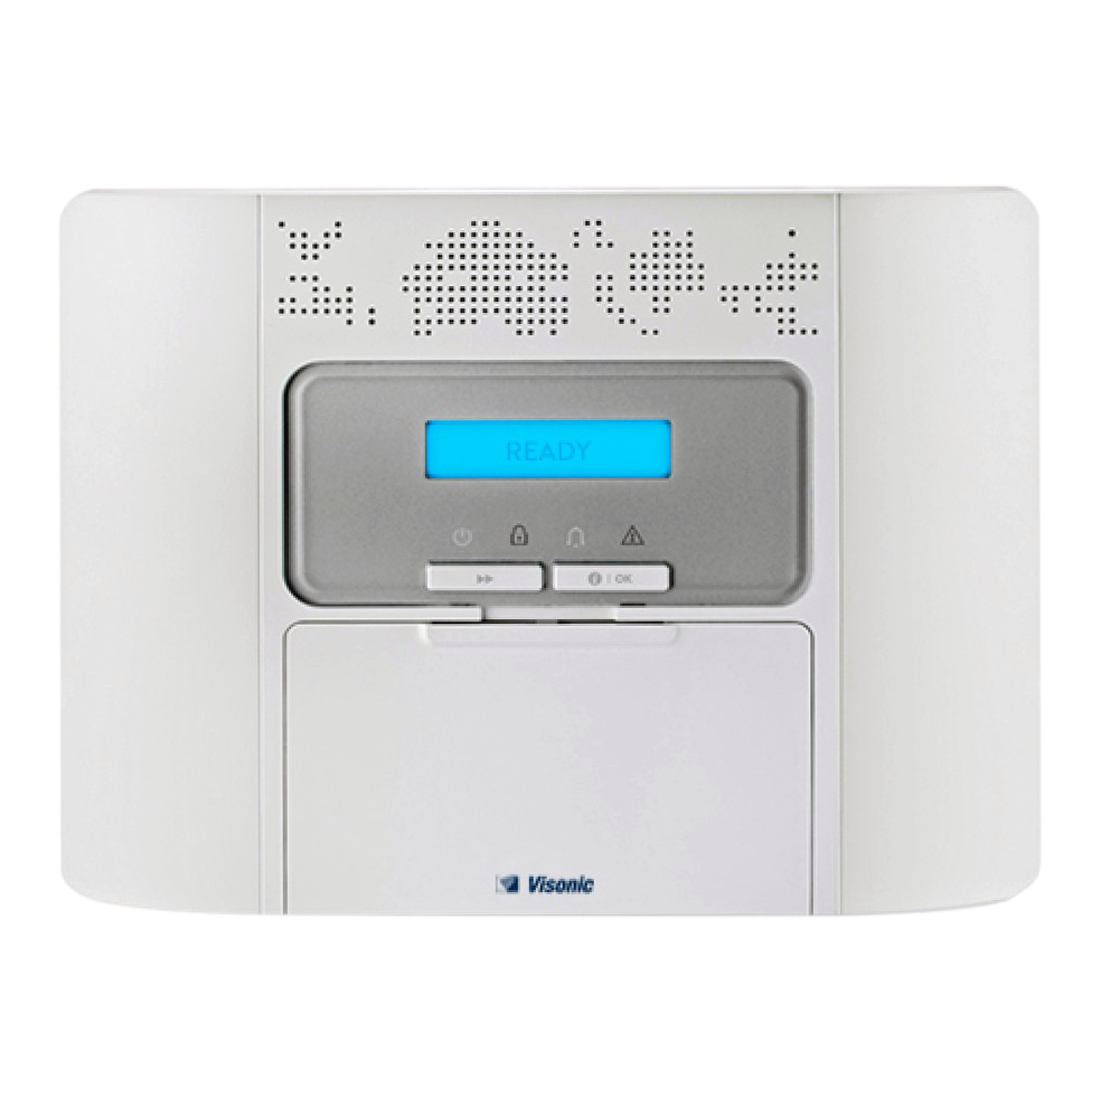 Visonic Wireless Alarms